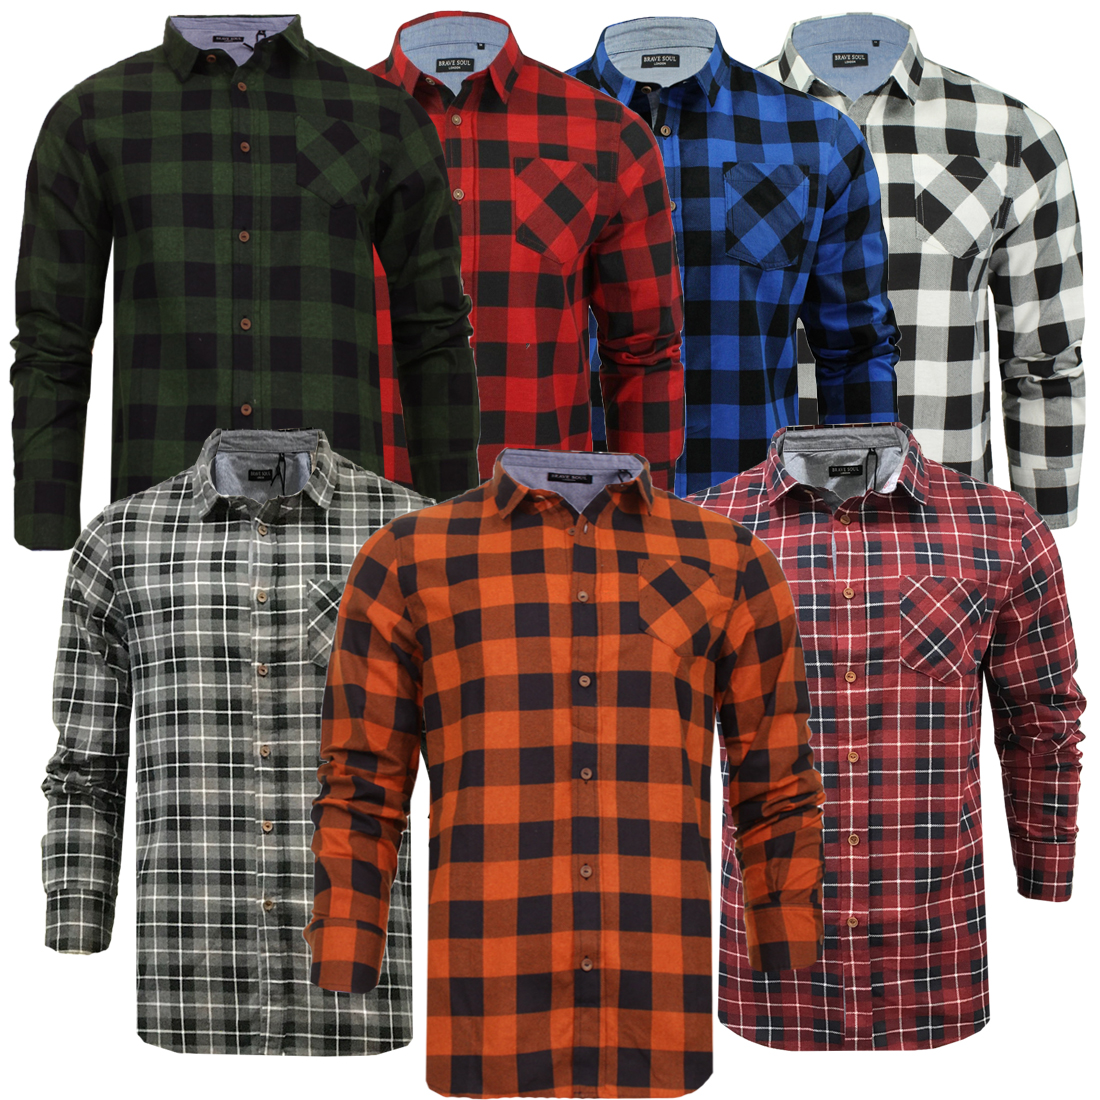 ad7f6920 Mens & Boys Check Shirt By Brave Soul Flannel Brushed Cotton Jack Casual  Shirt